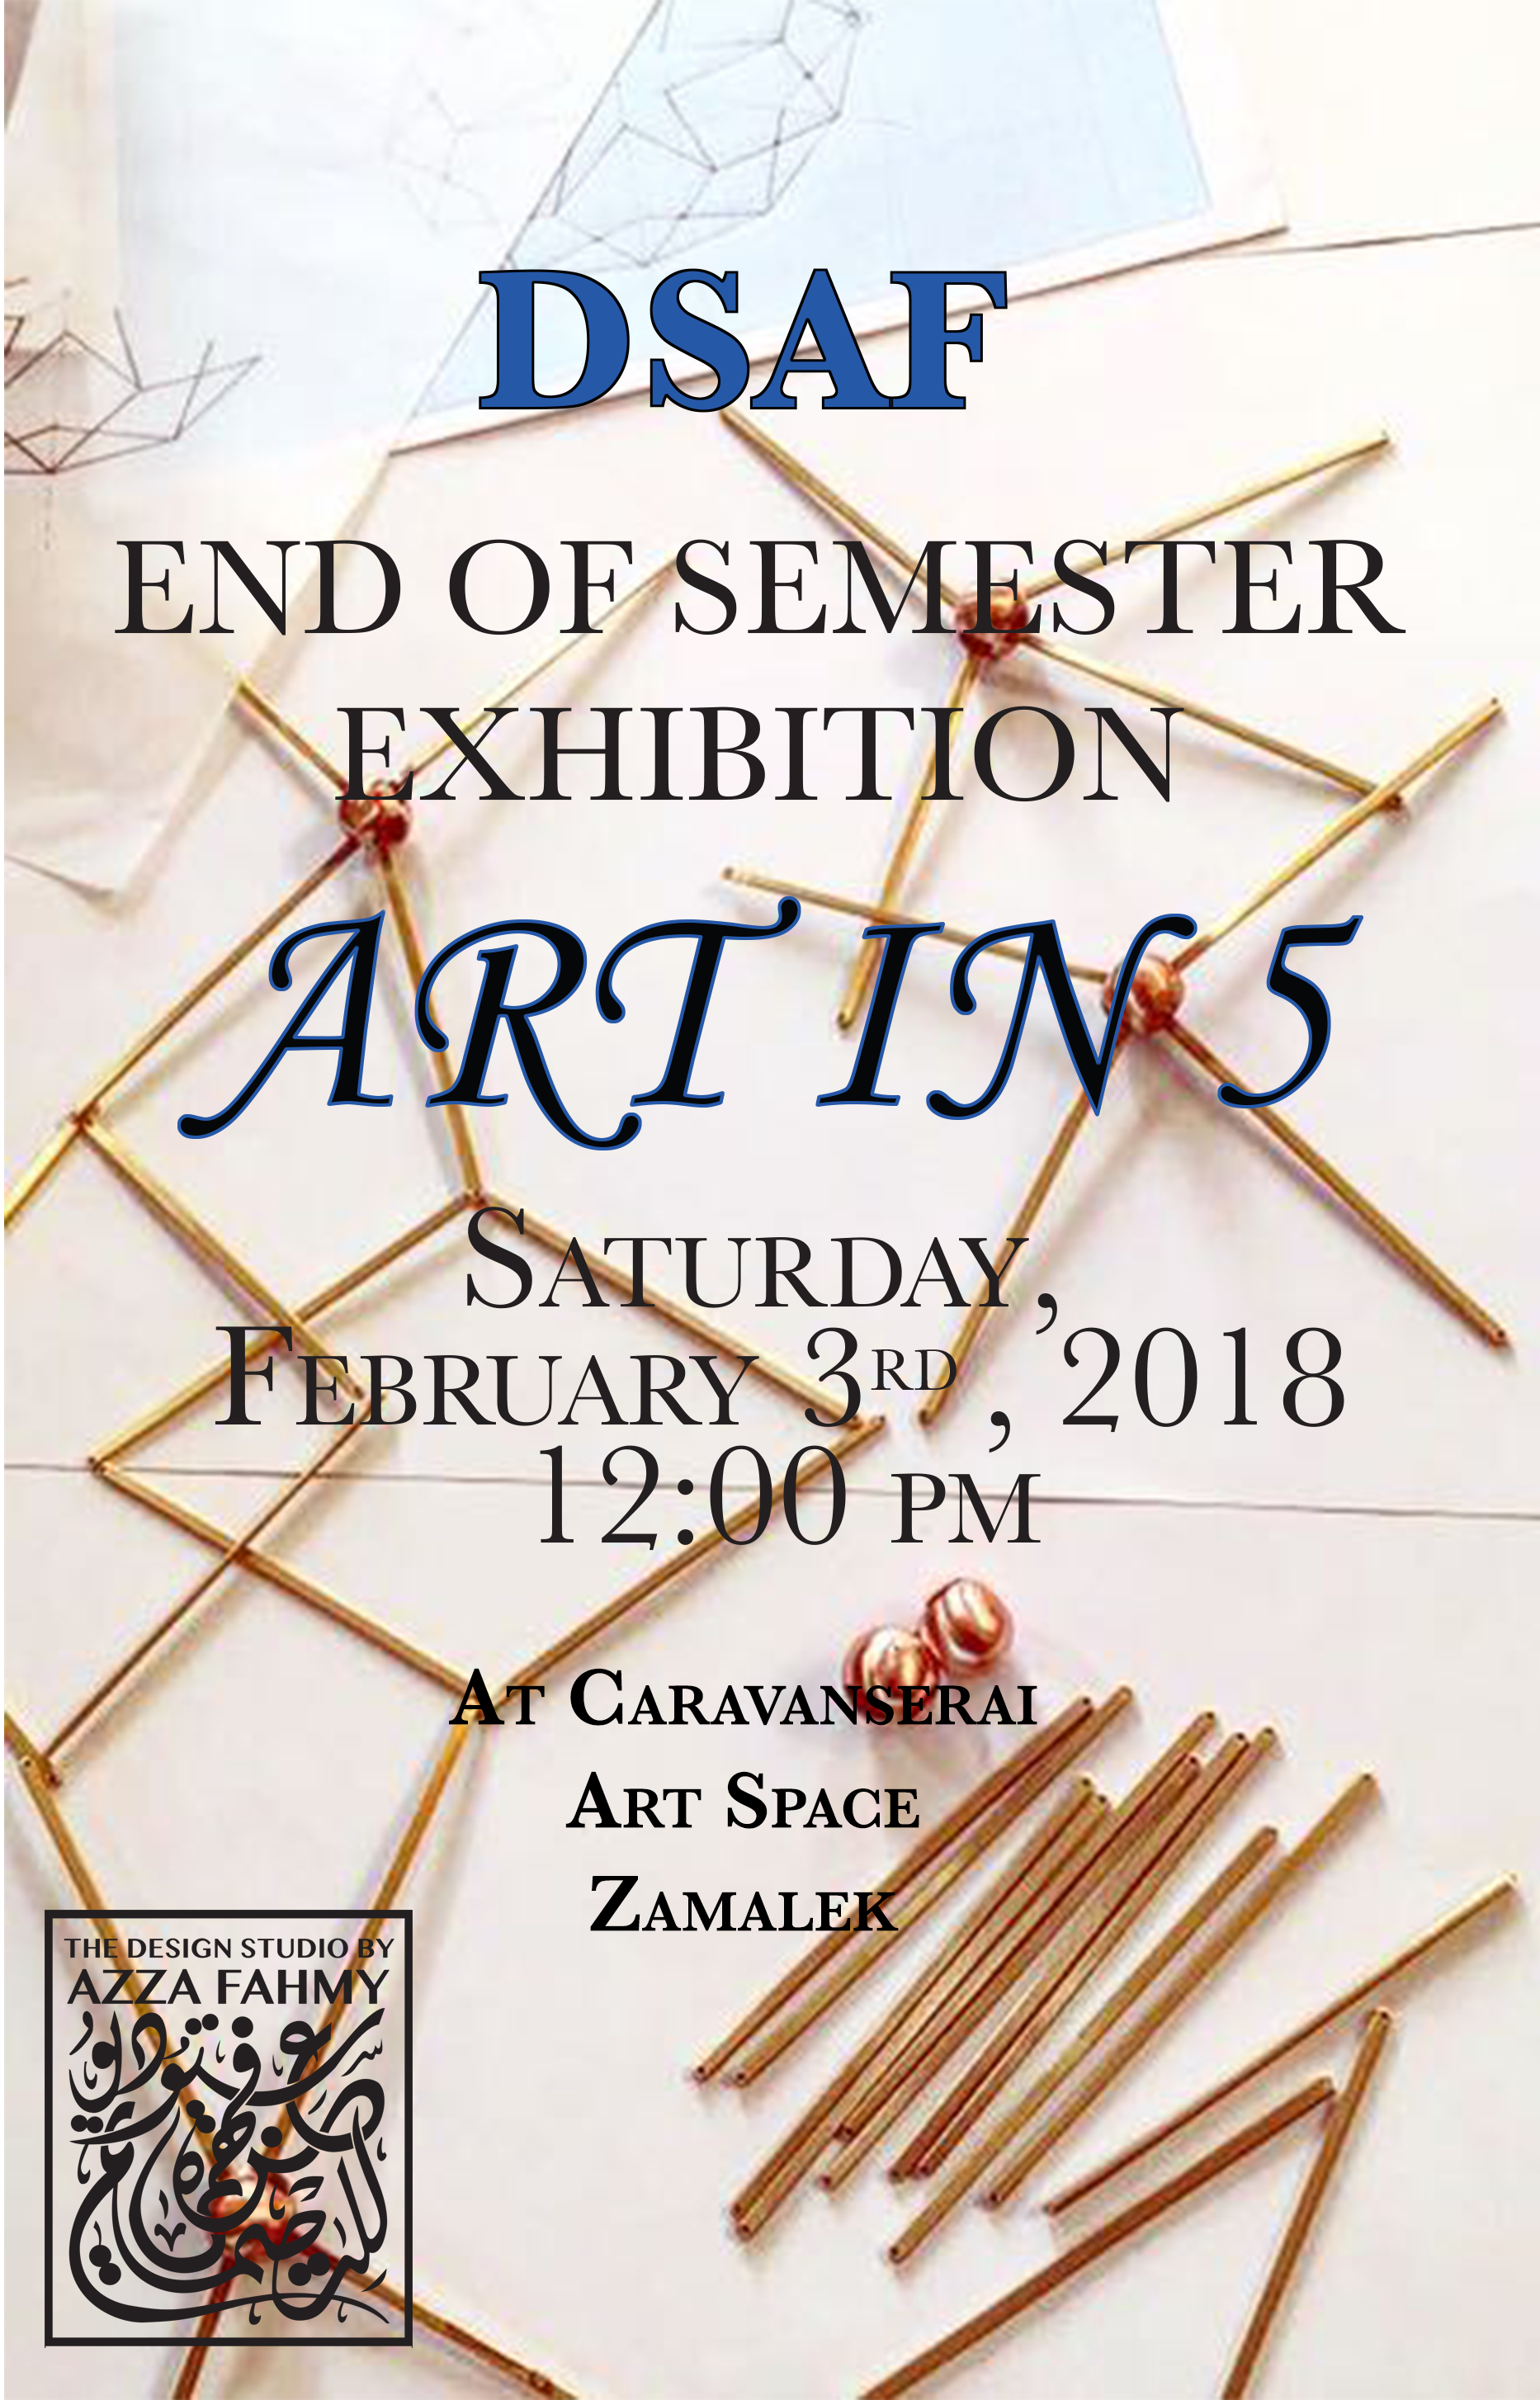 DSAF End of Semester Exhibition – Art in 5